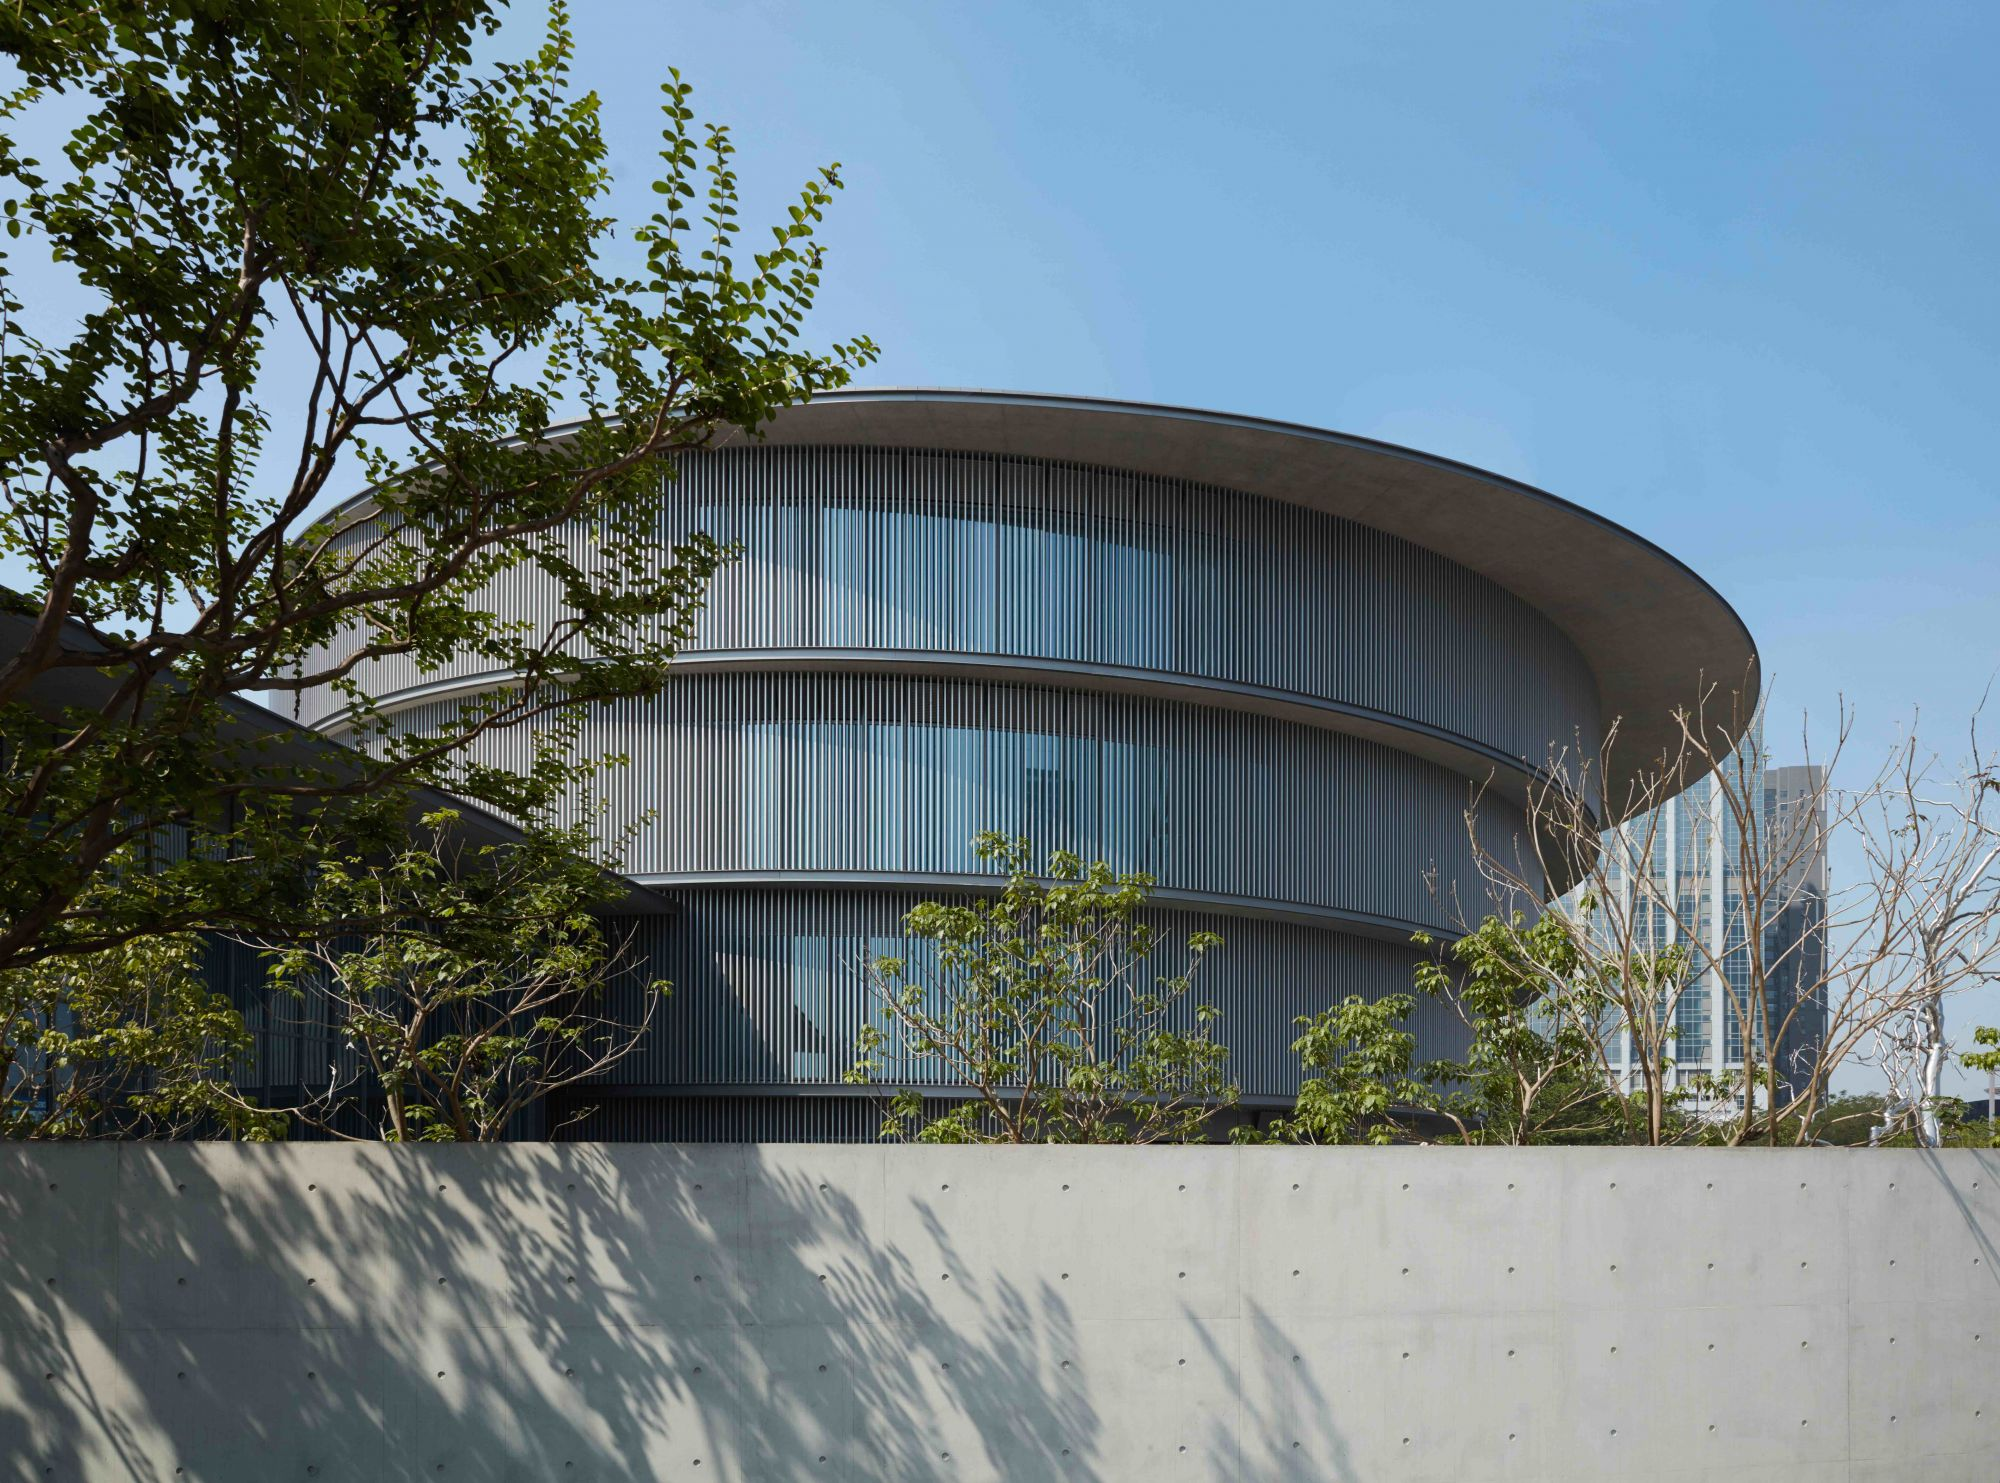 The He Art Museum, A Major New Art Centre In Guangdong, To Open This October